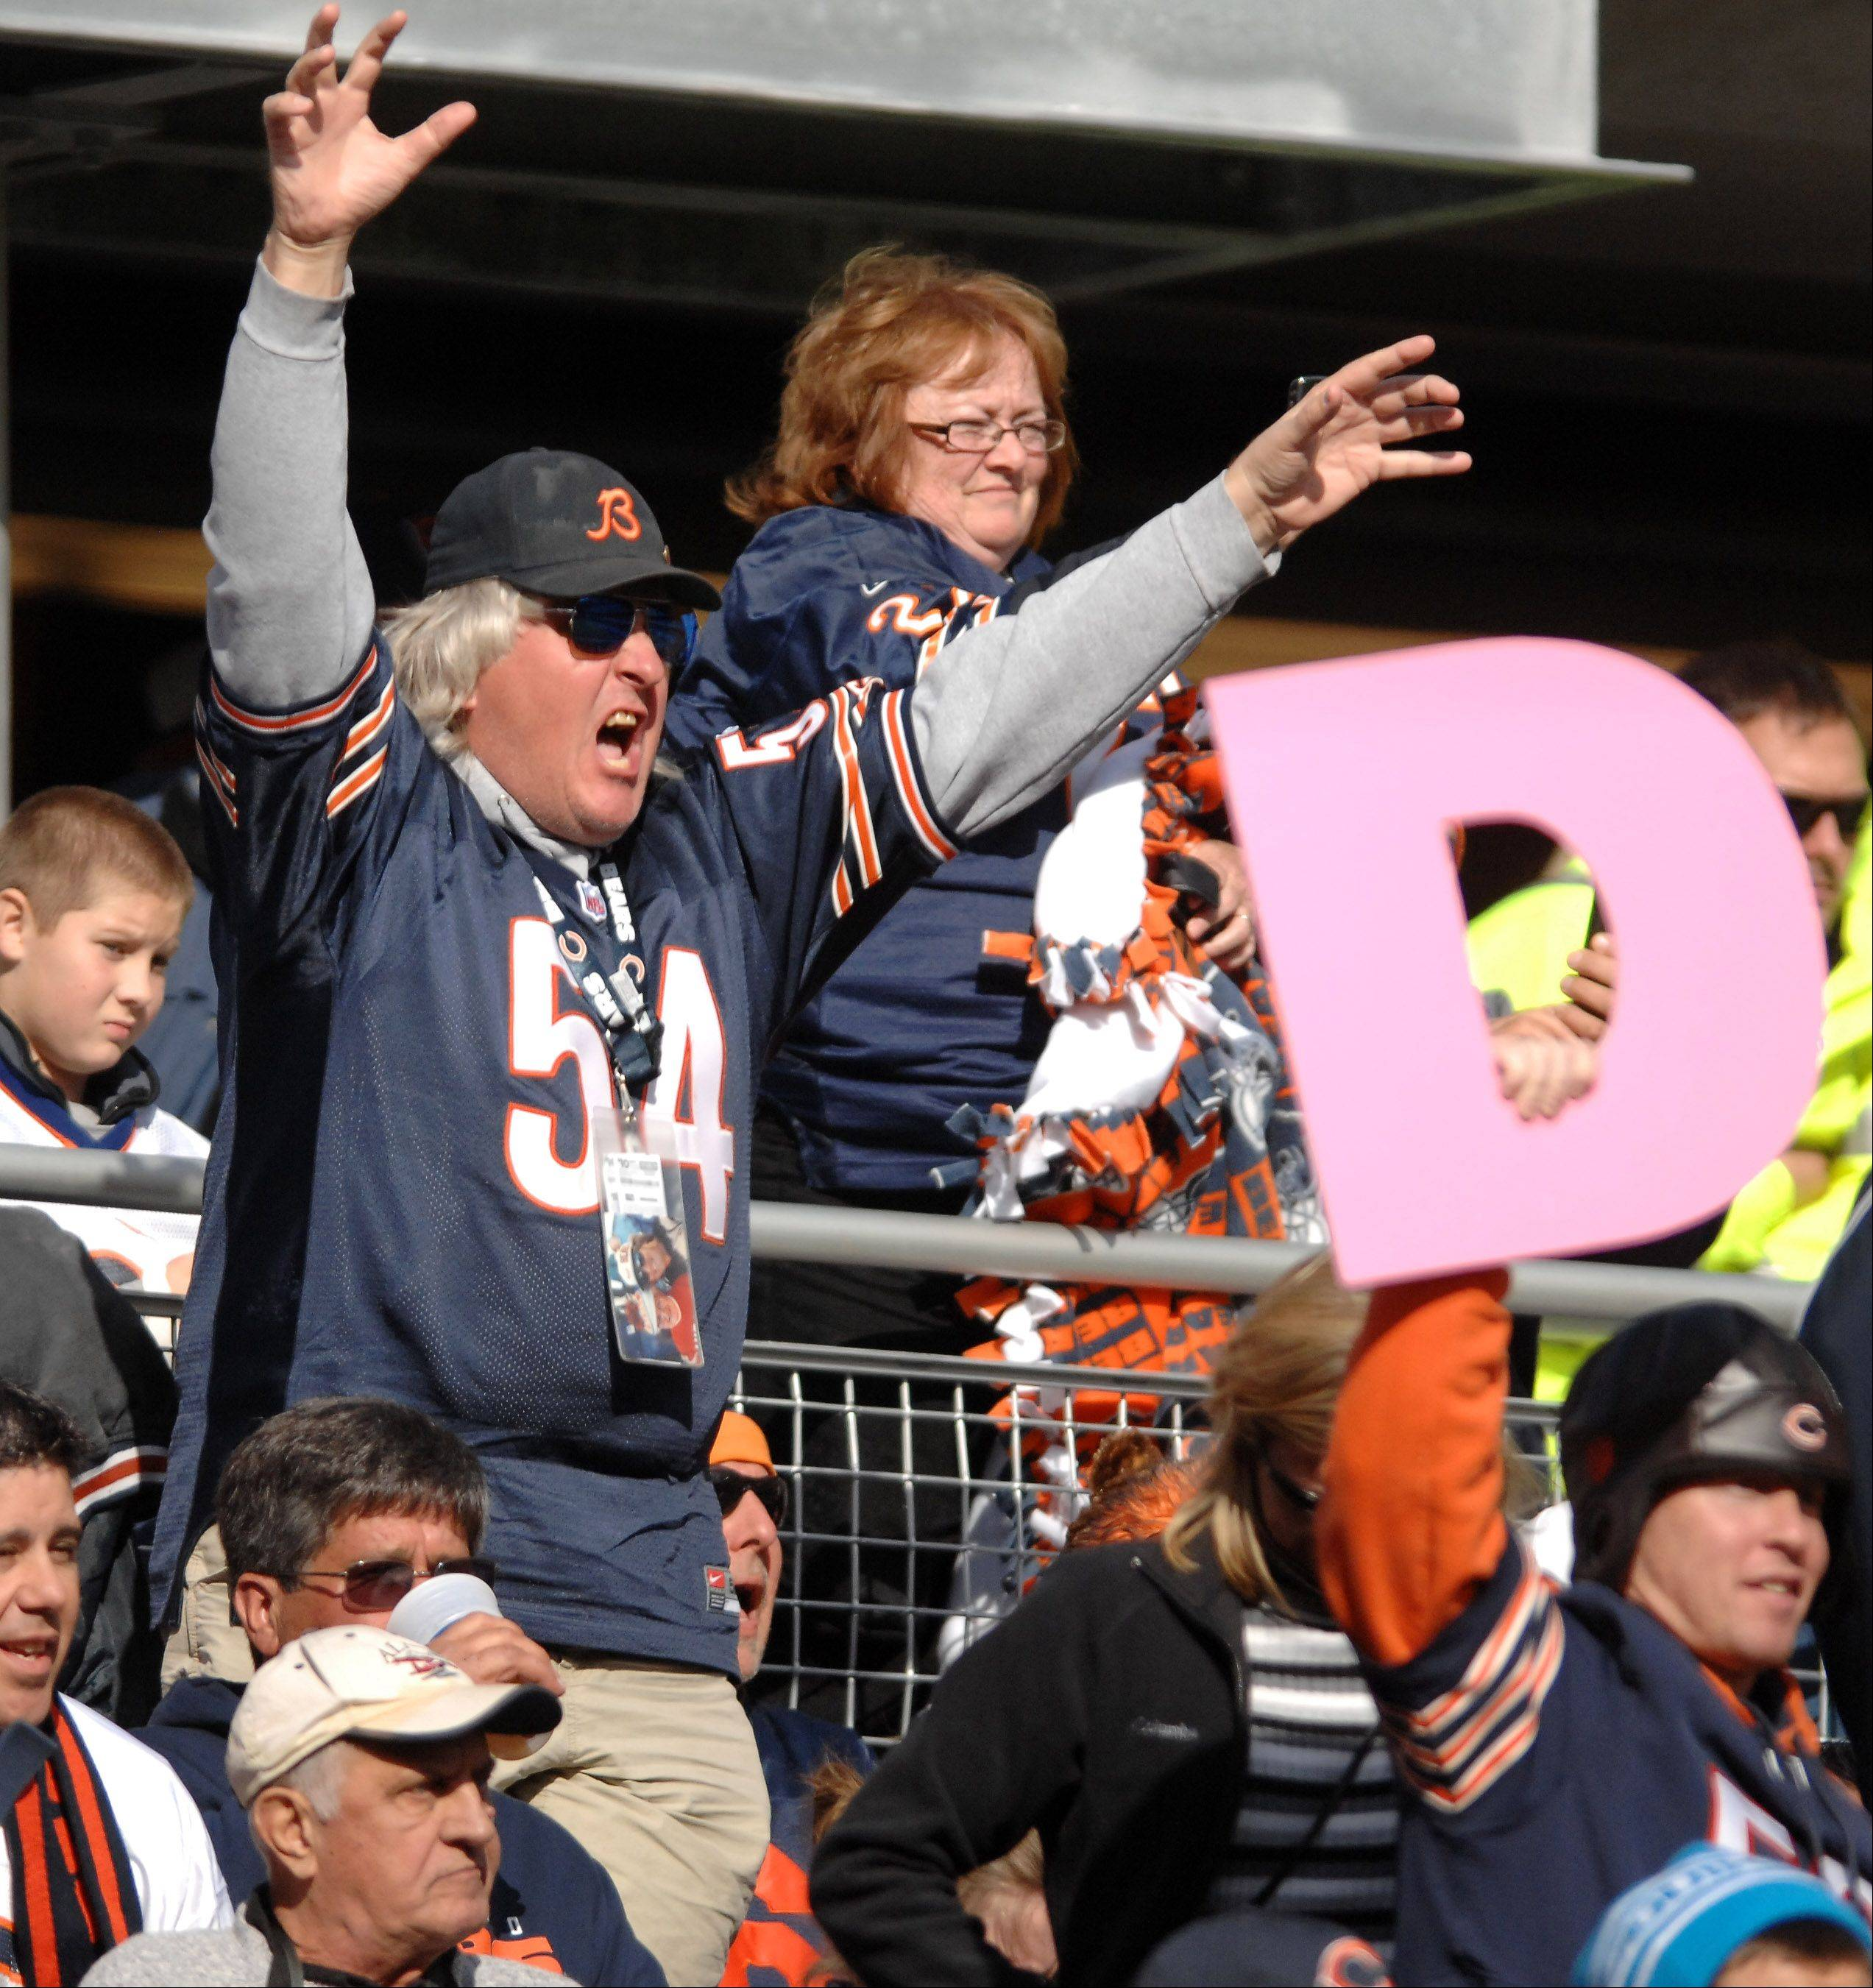 Some of the best stories can be found in the stands at a Bears game.